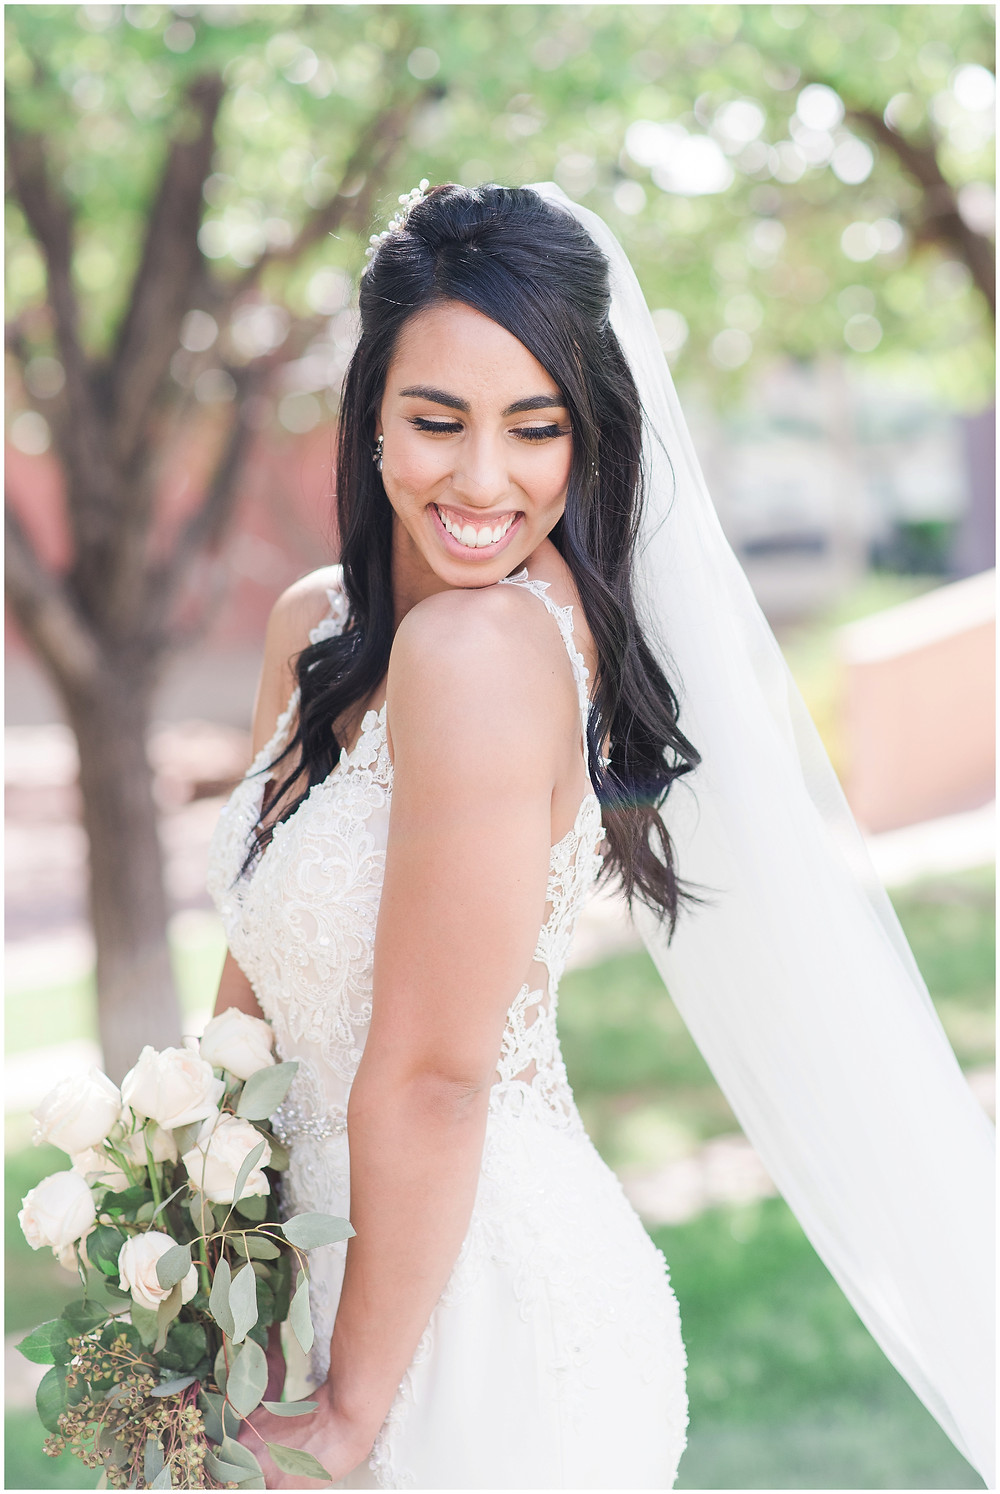 Bride before ceremony with wedding veil and white rose bouquet in white lace wedding dress